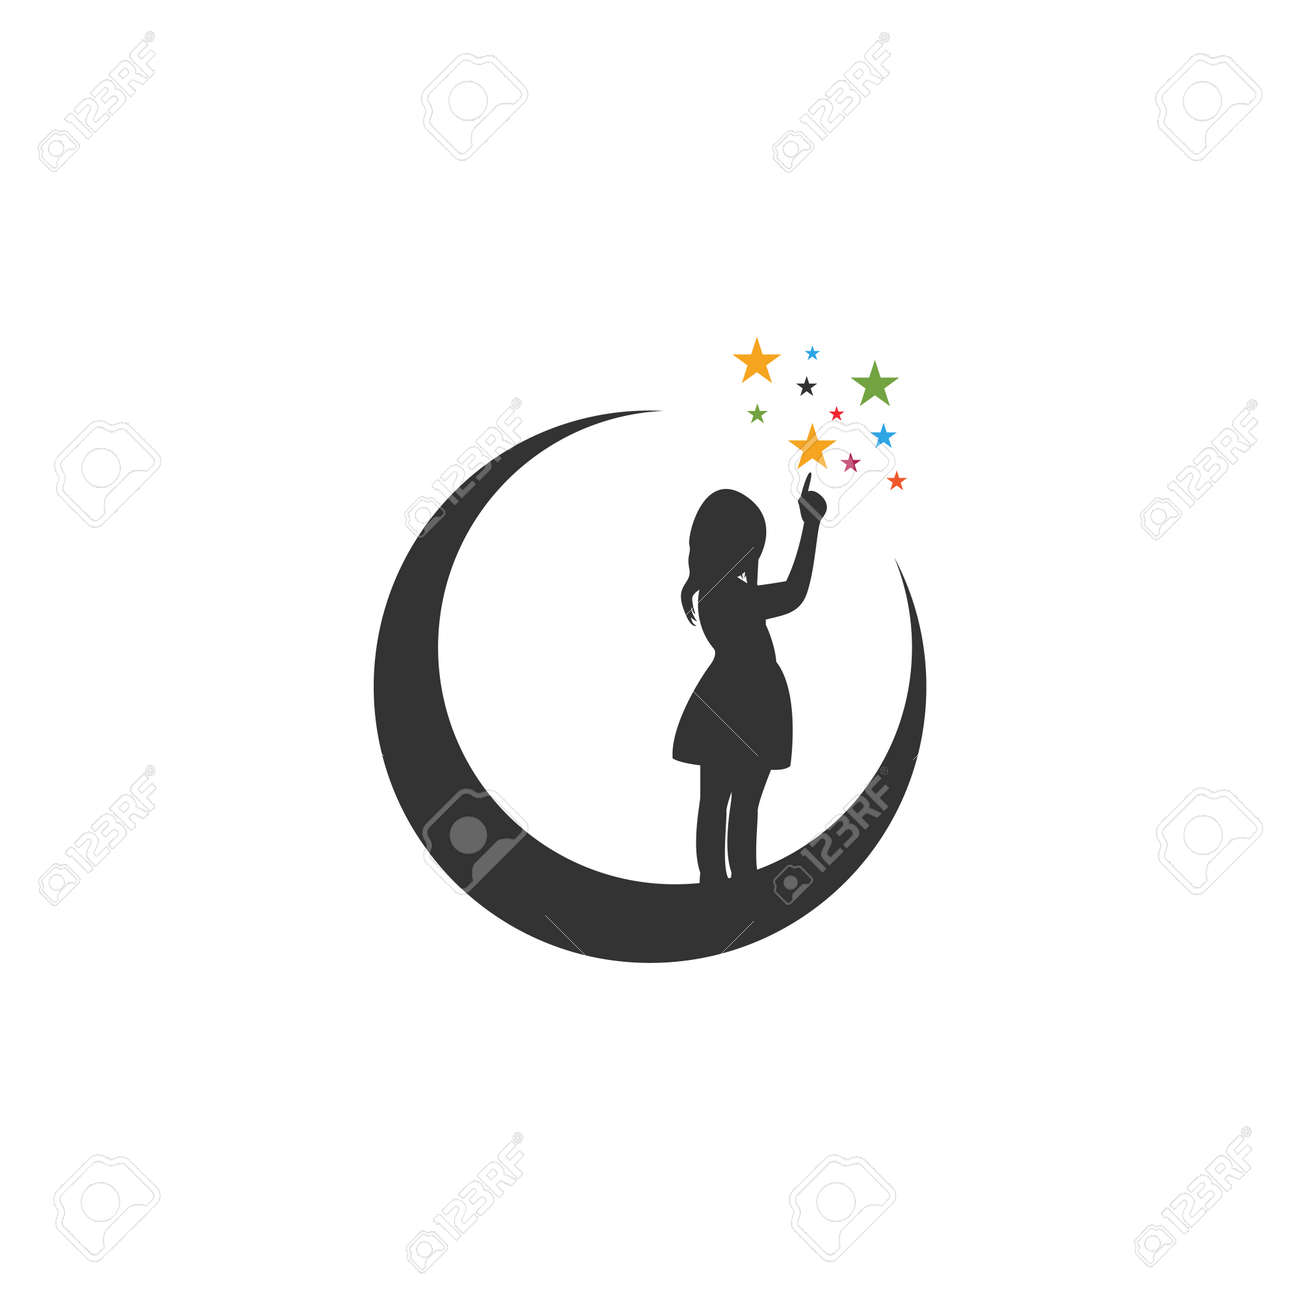 Moon night graphic design template vector isolated - 134009494